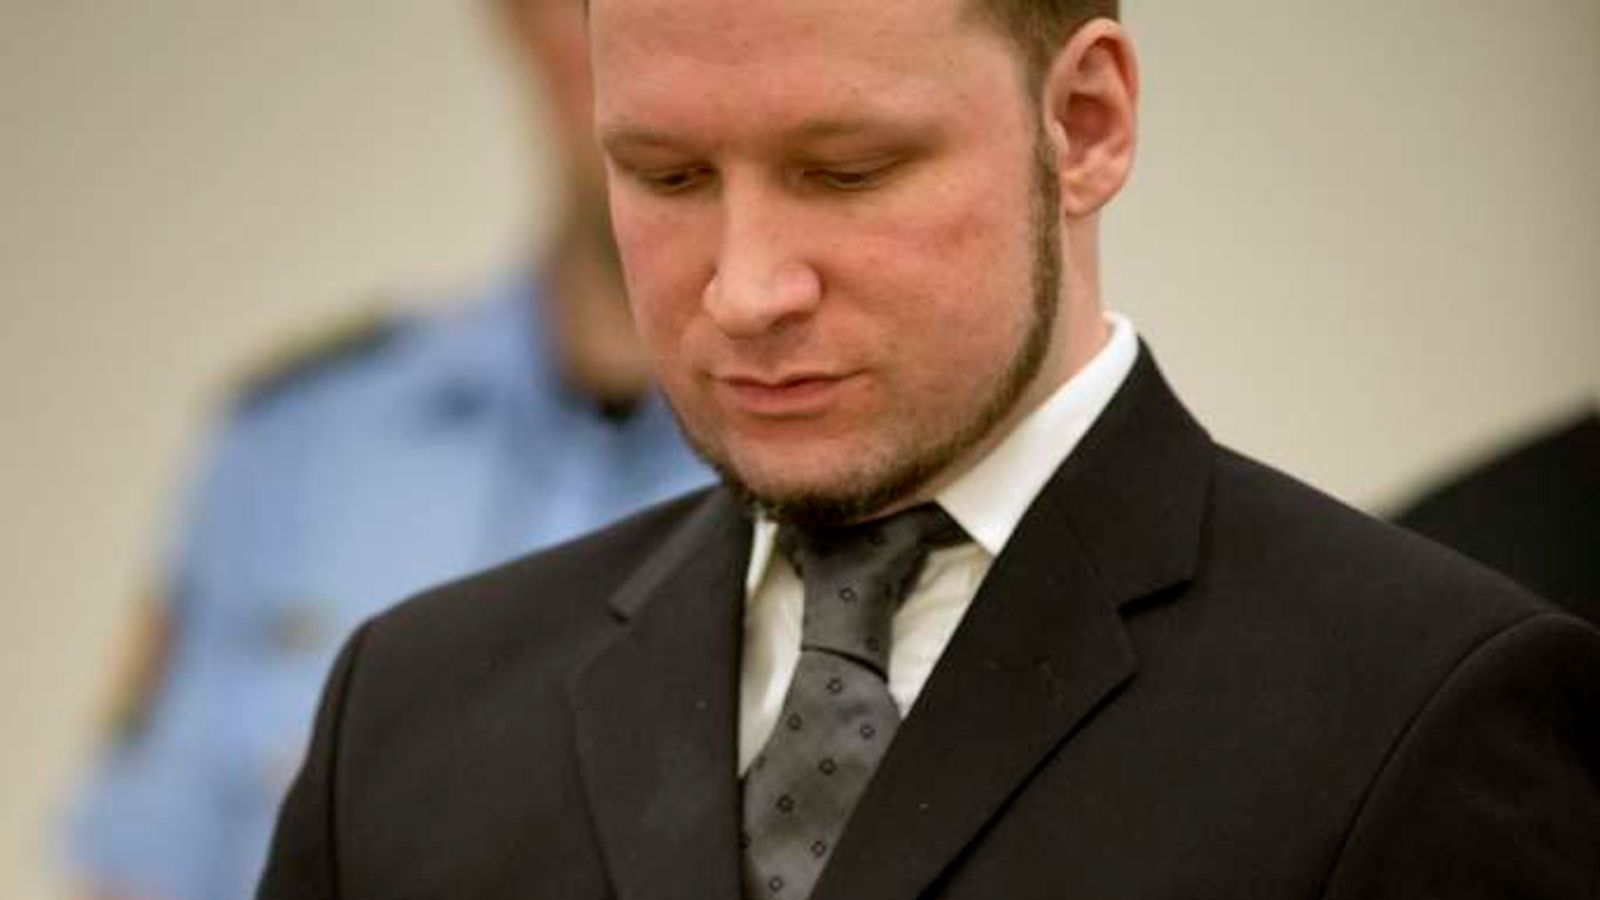 Breivik in the court on the day he was sentenced.